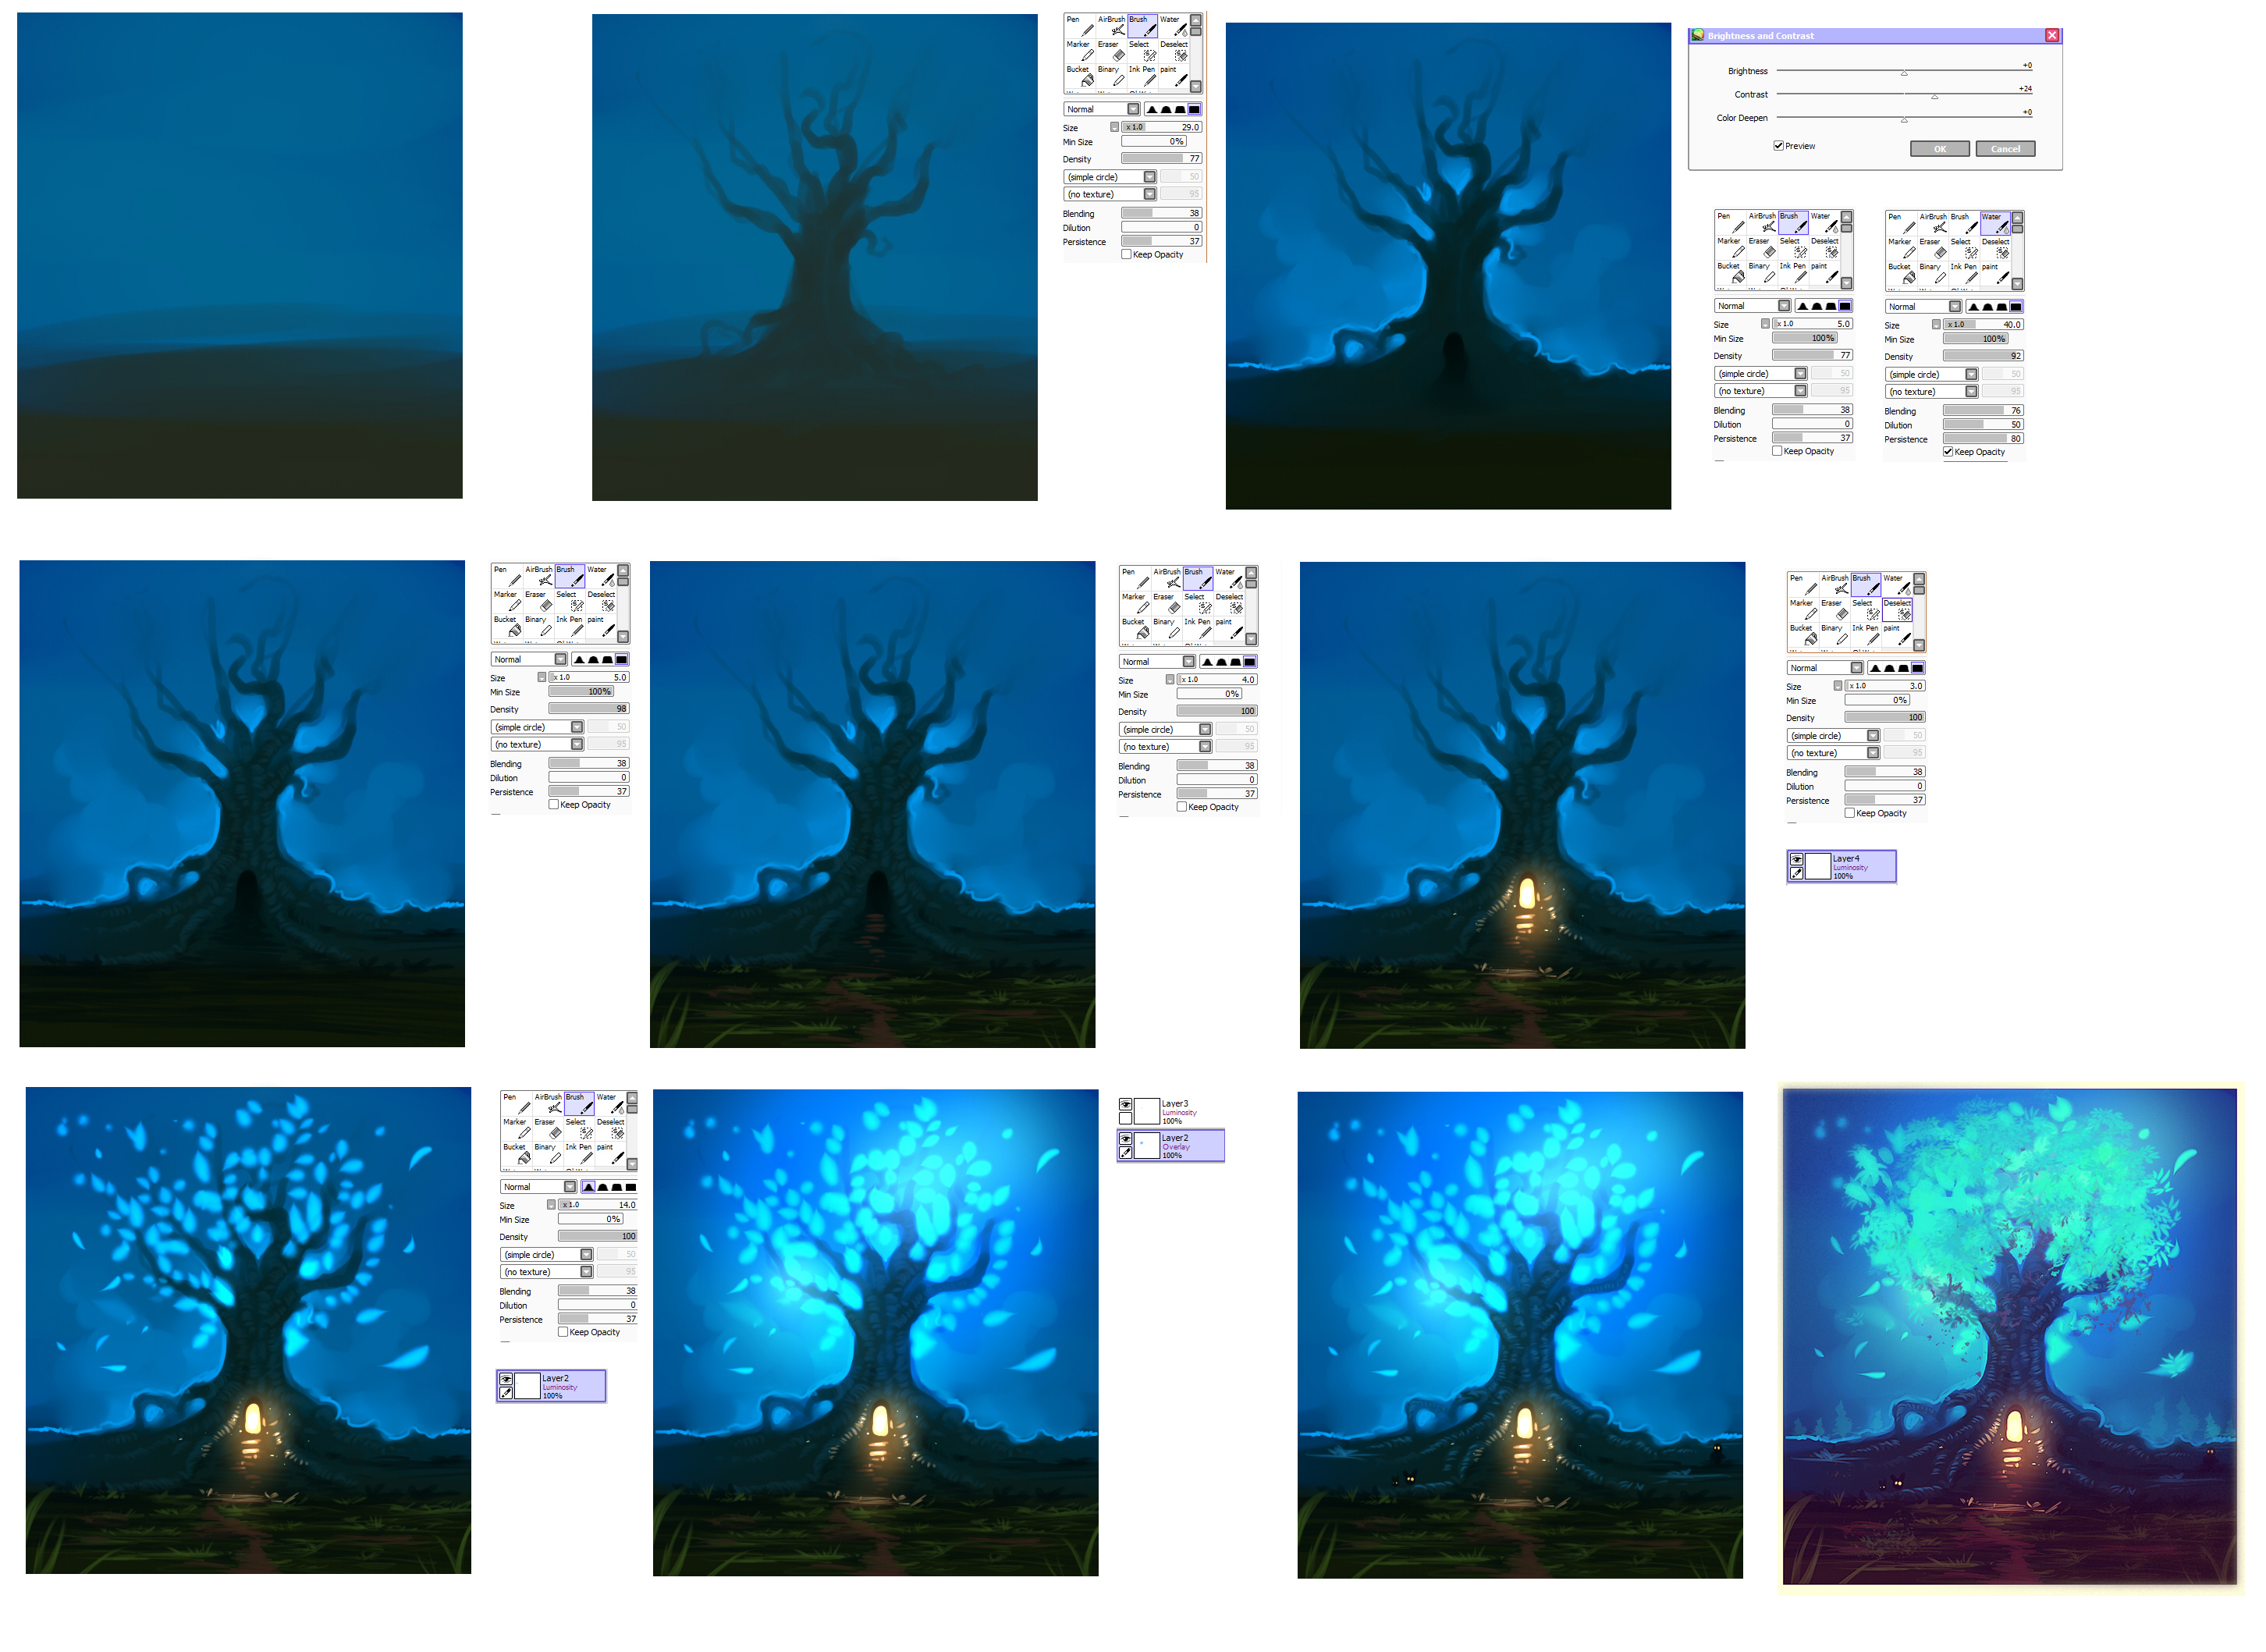 Magic Tree step by step - tutorial by ryky on DeviantArt